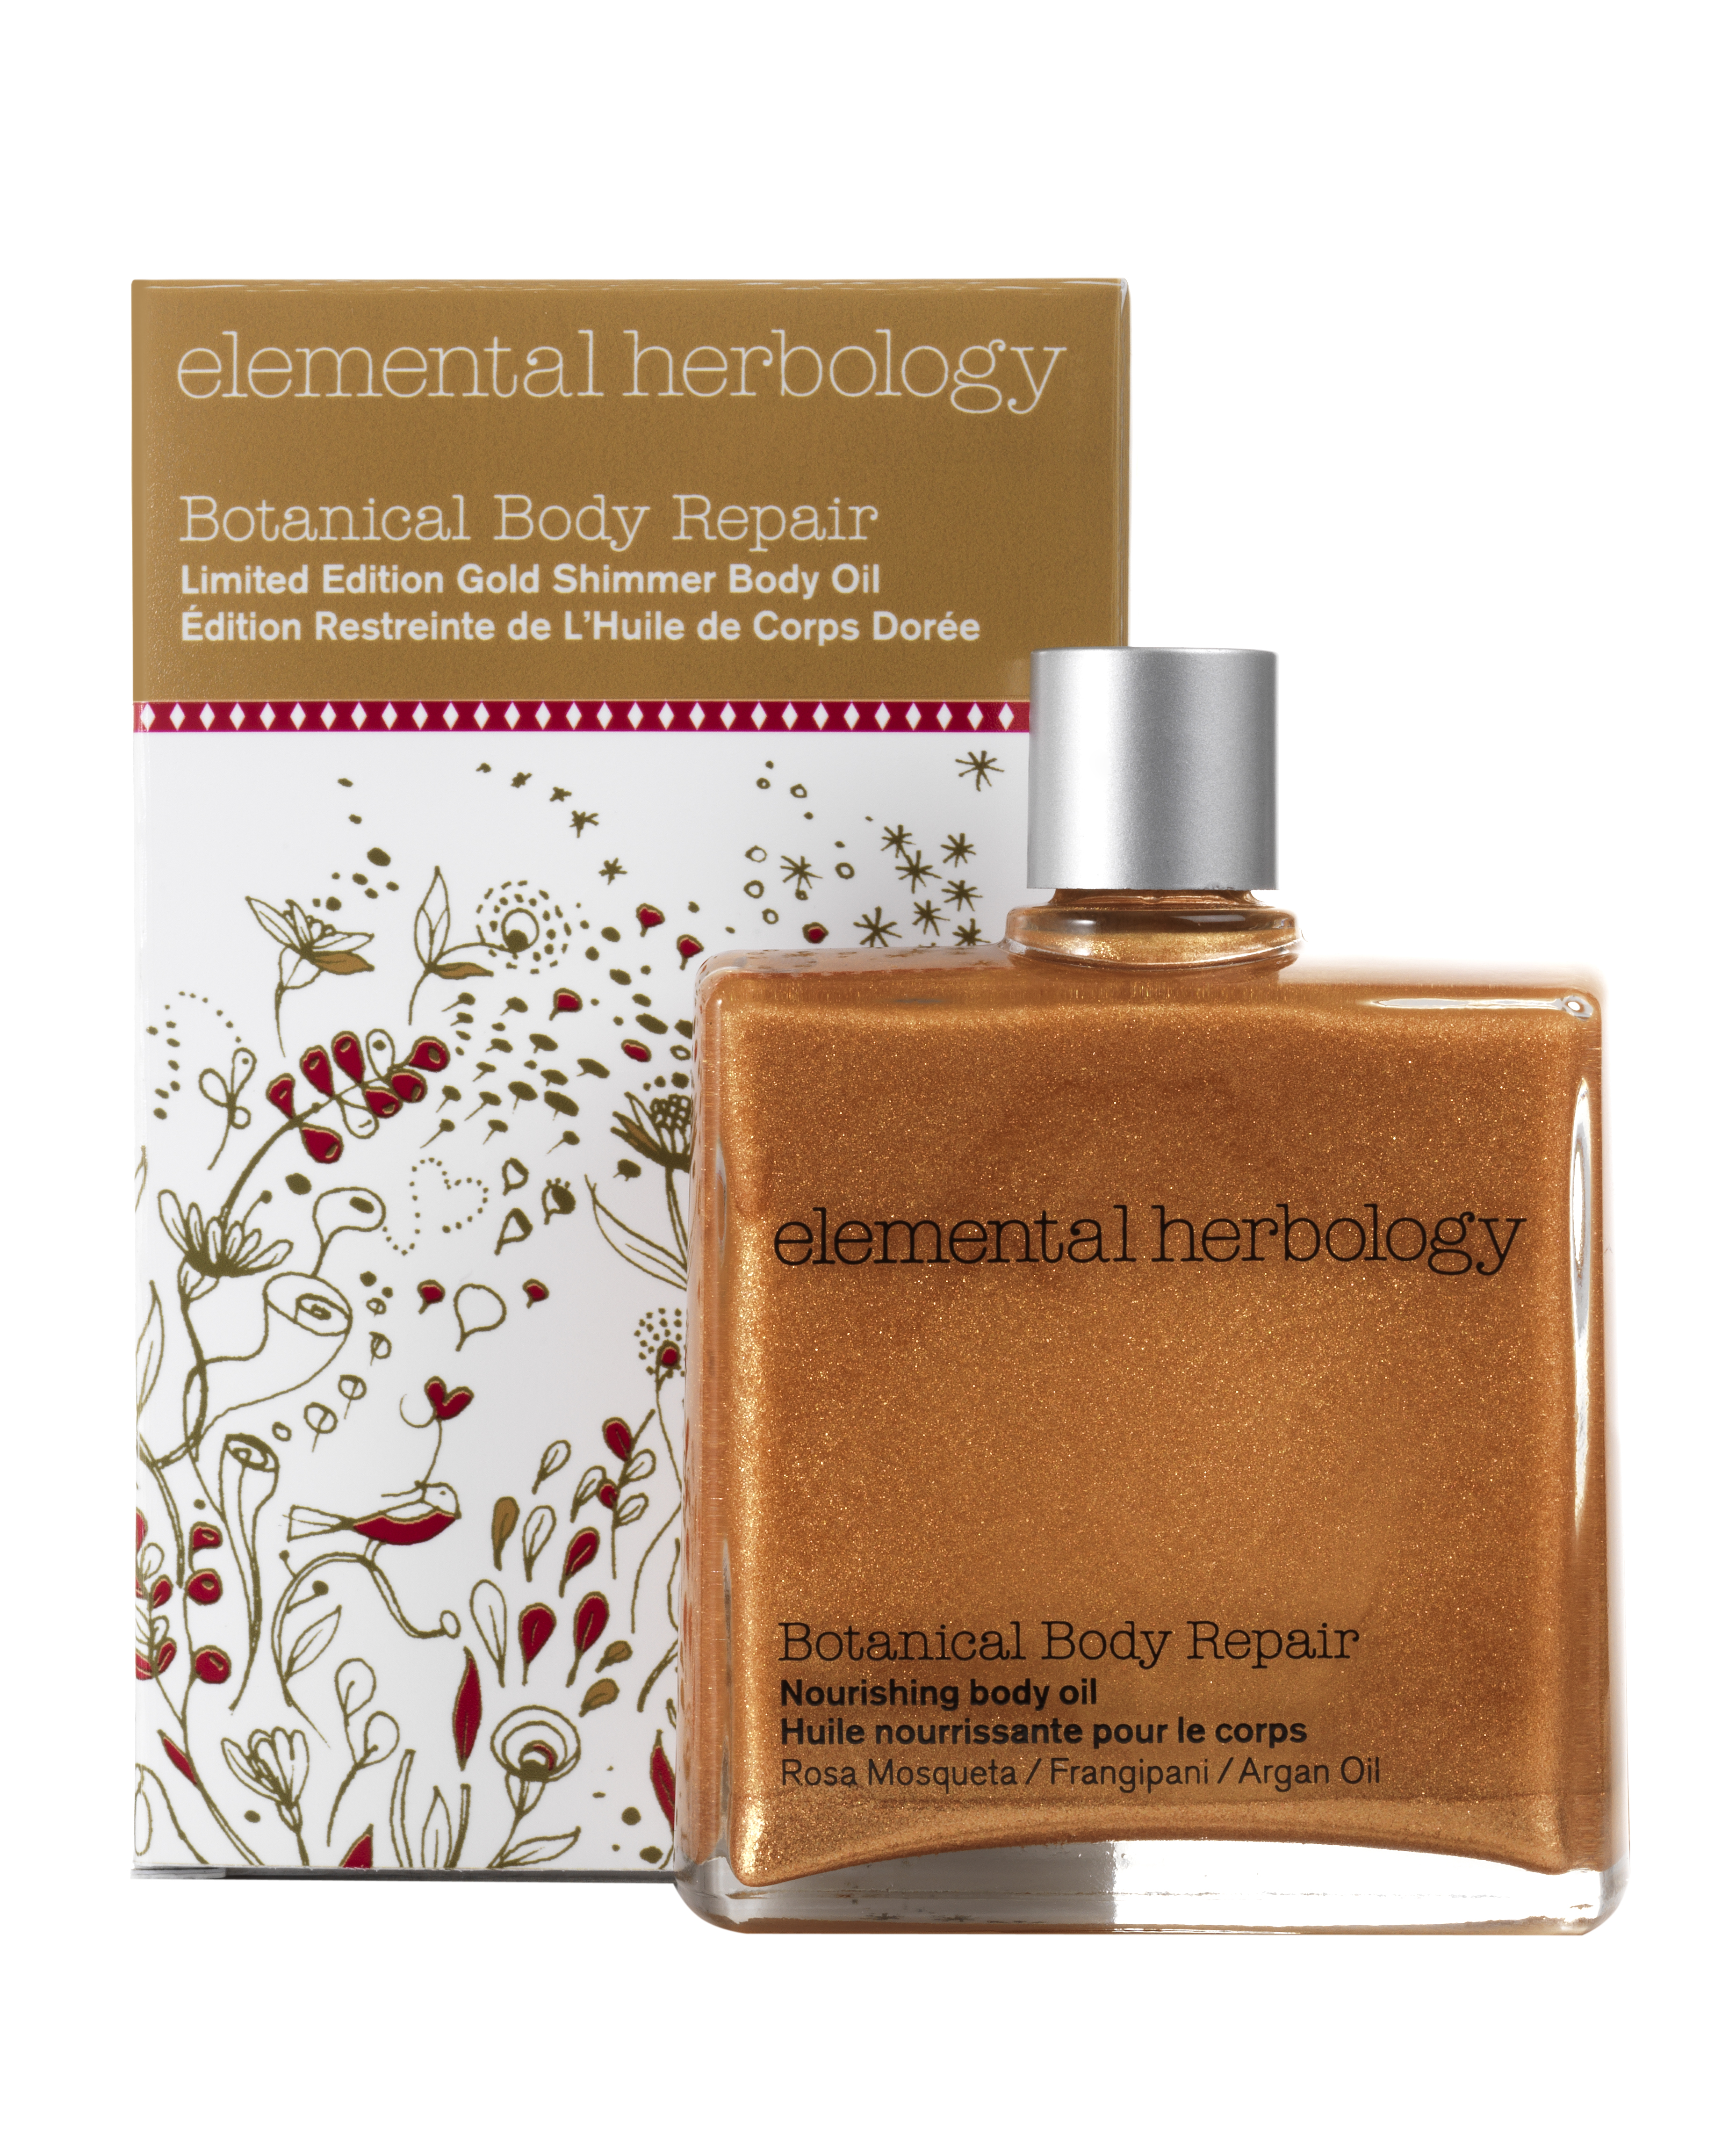 Elemental Herbology_Botanical Body Repair Gold Shimmer Body Oil